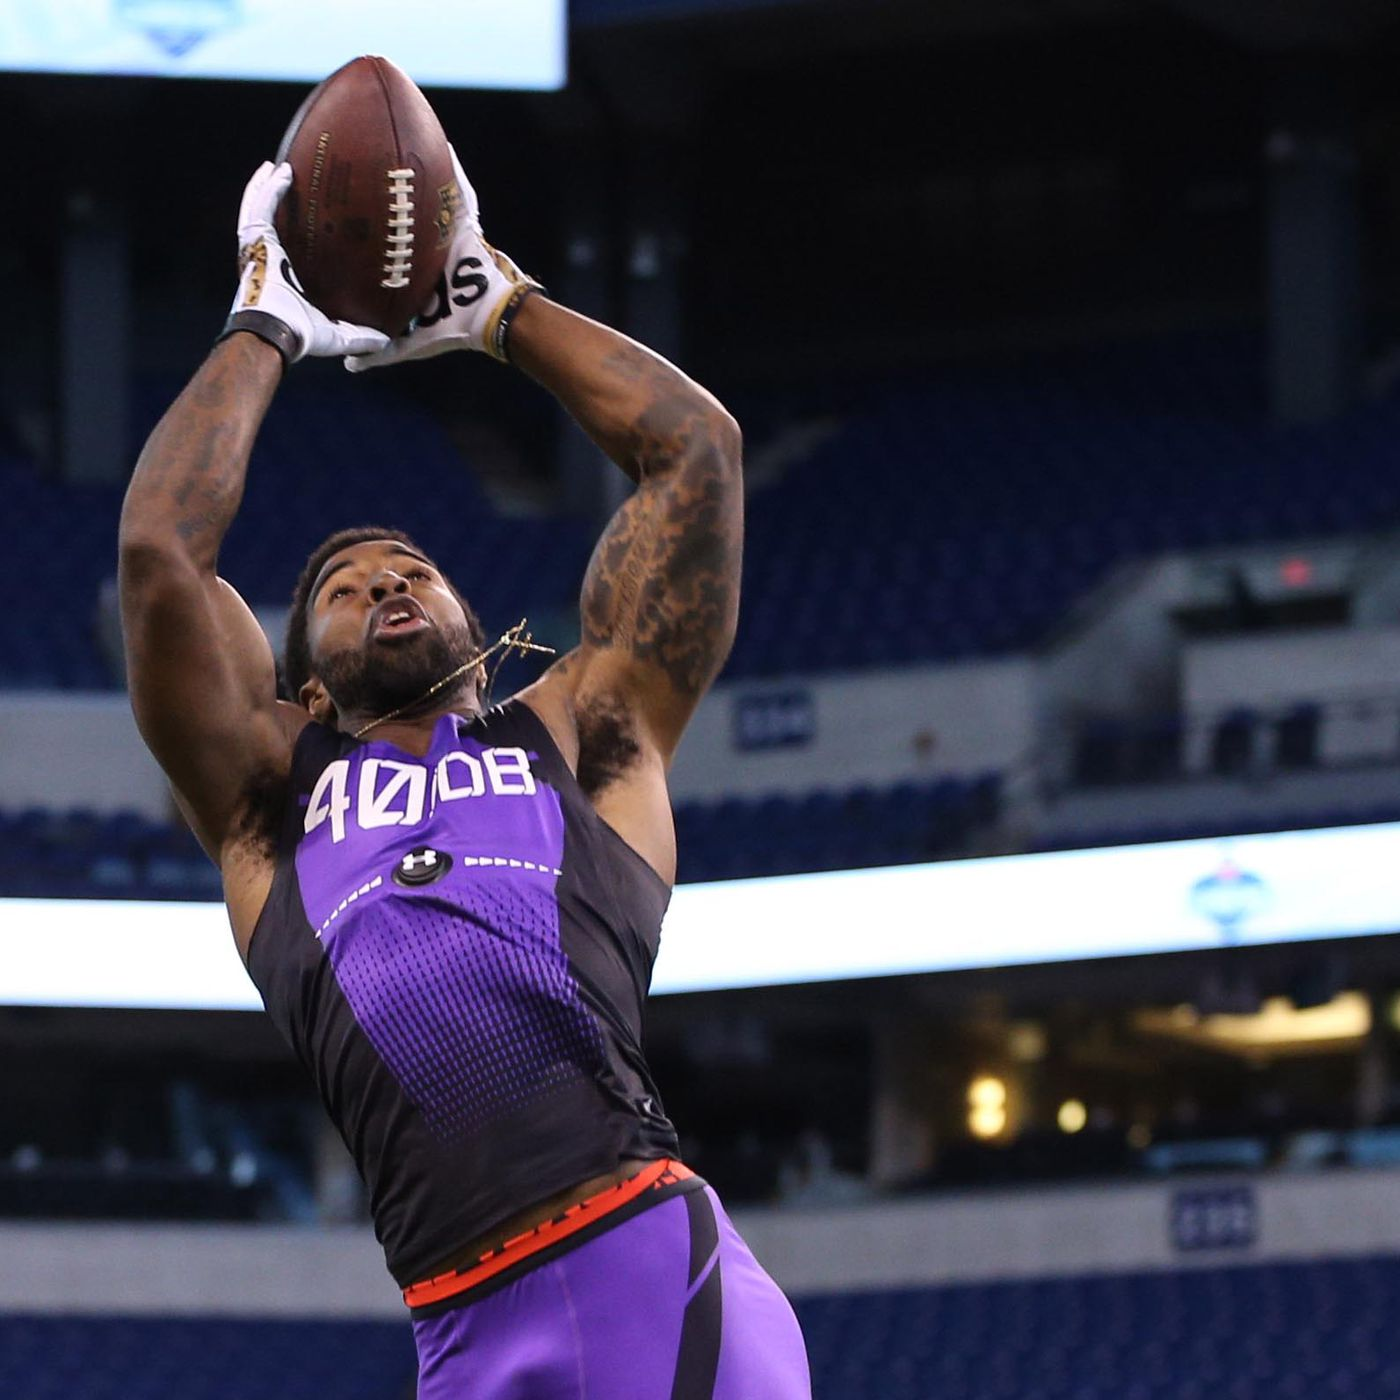 Packers see big upside in Quinten Rollins - Acme Packing Company